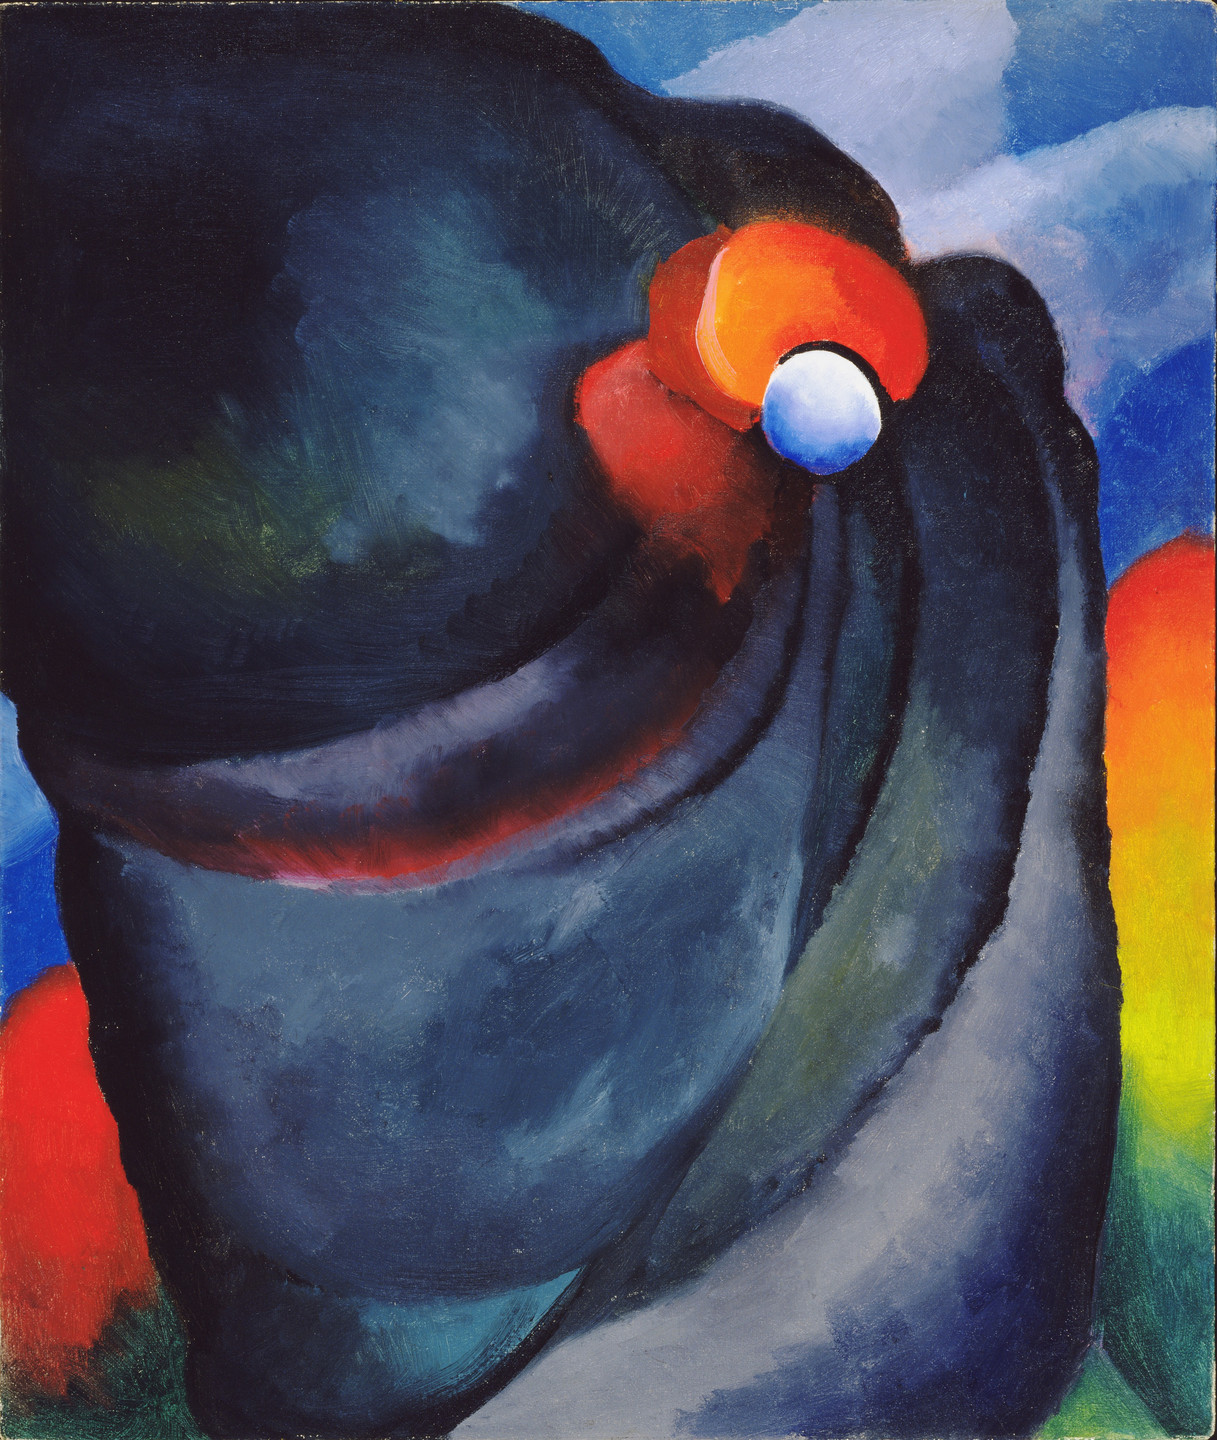 Georgia O'Keeffe. Lake George, Coat and Red. 1919